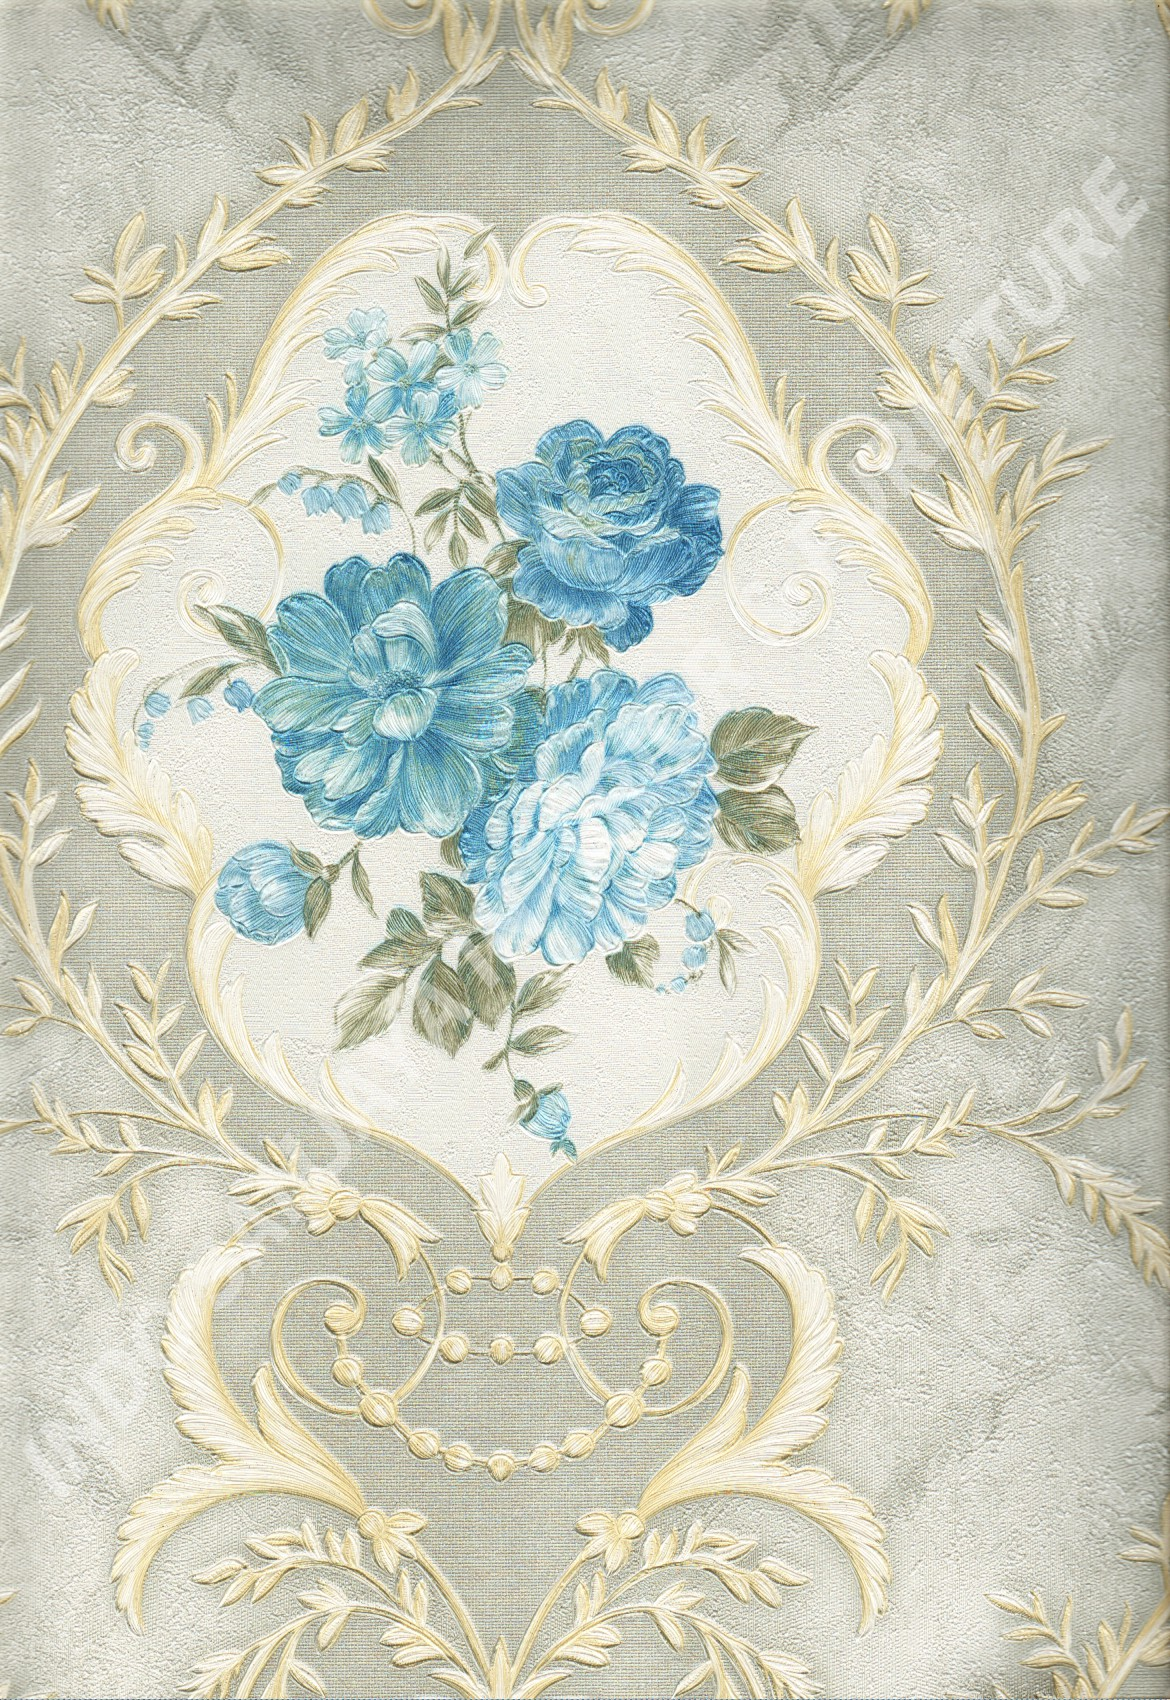 wallpaper   Wallpaper Bunga DL10502:DL10502 corak  warna